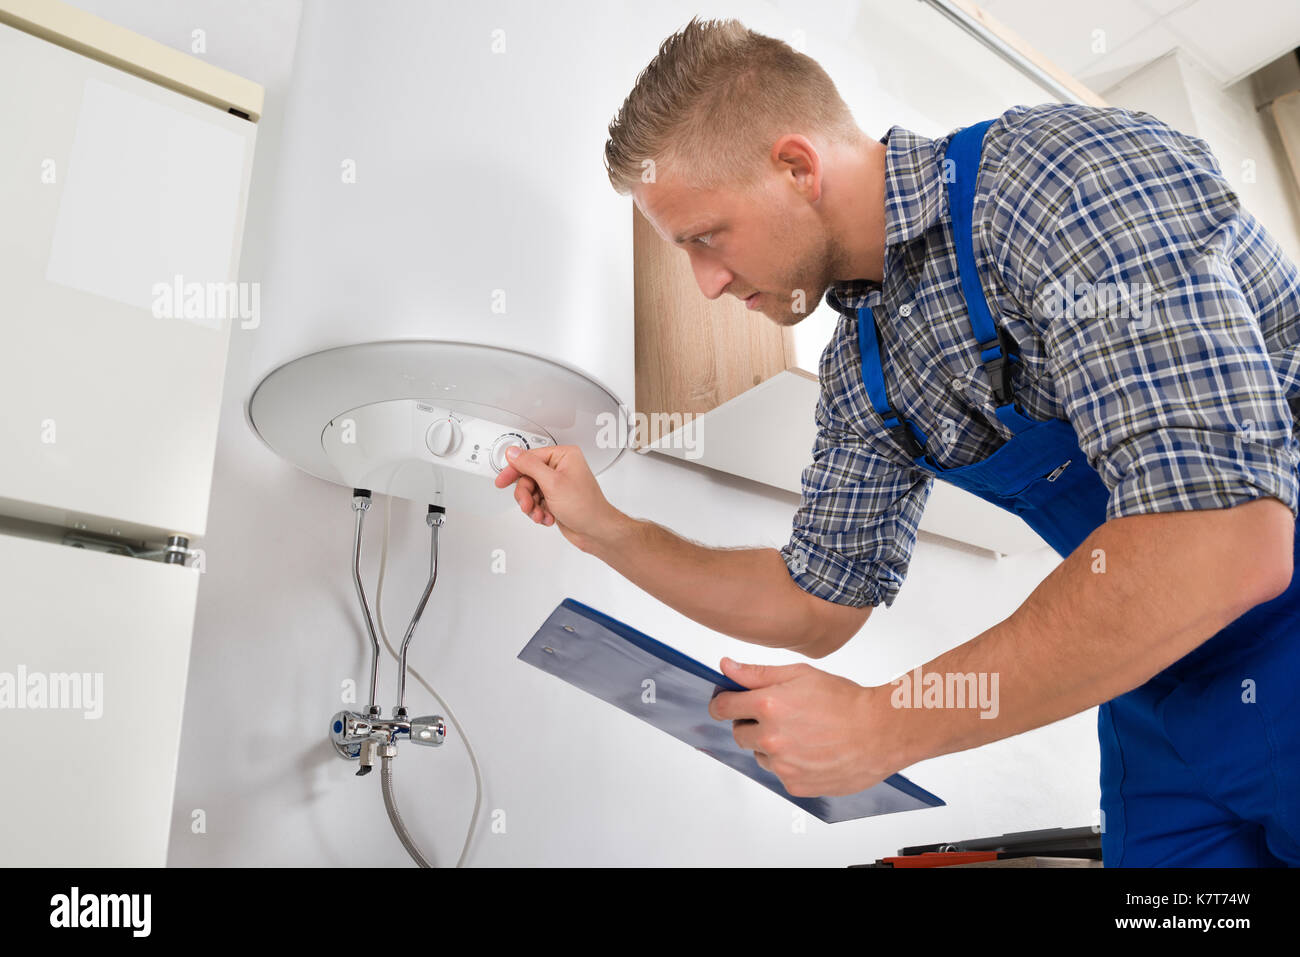 Male Worker With Clipboard Adjusting Temperature Of Water Heater - Stock Image